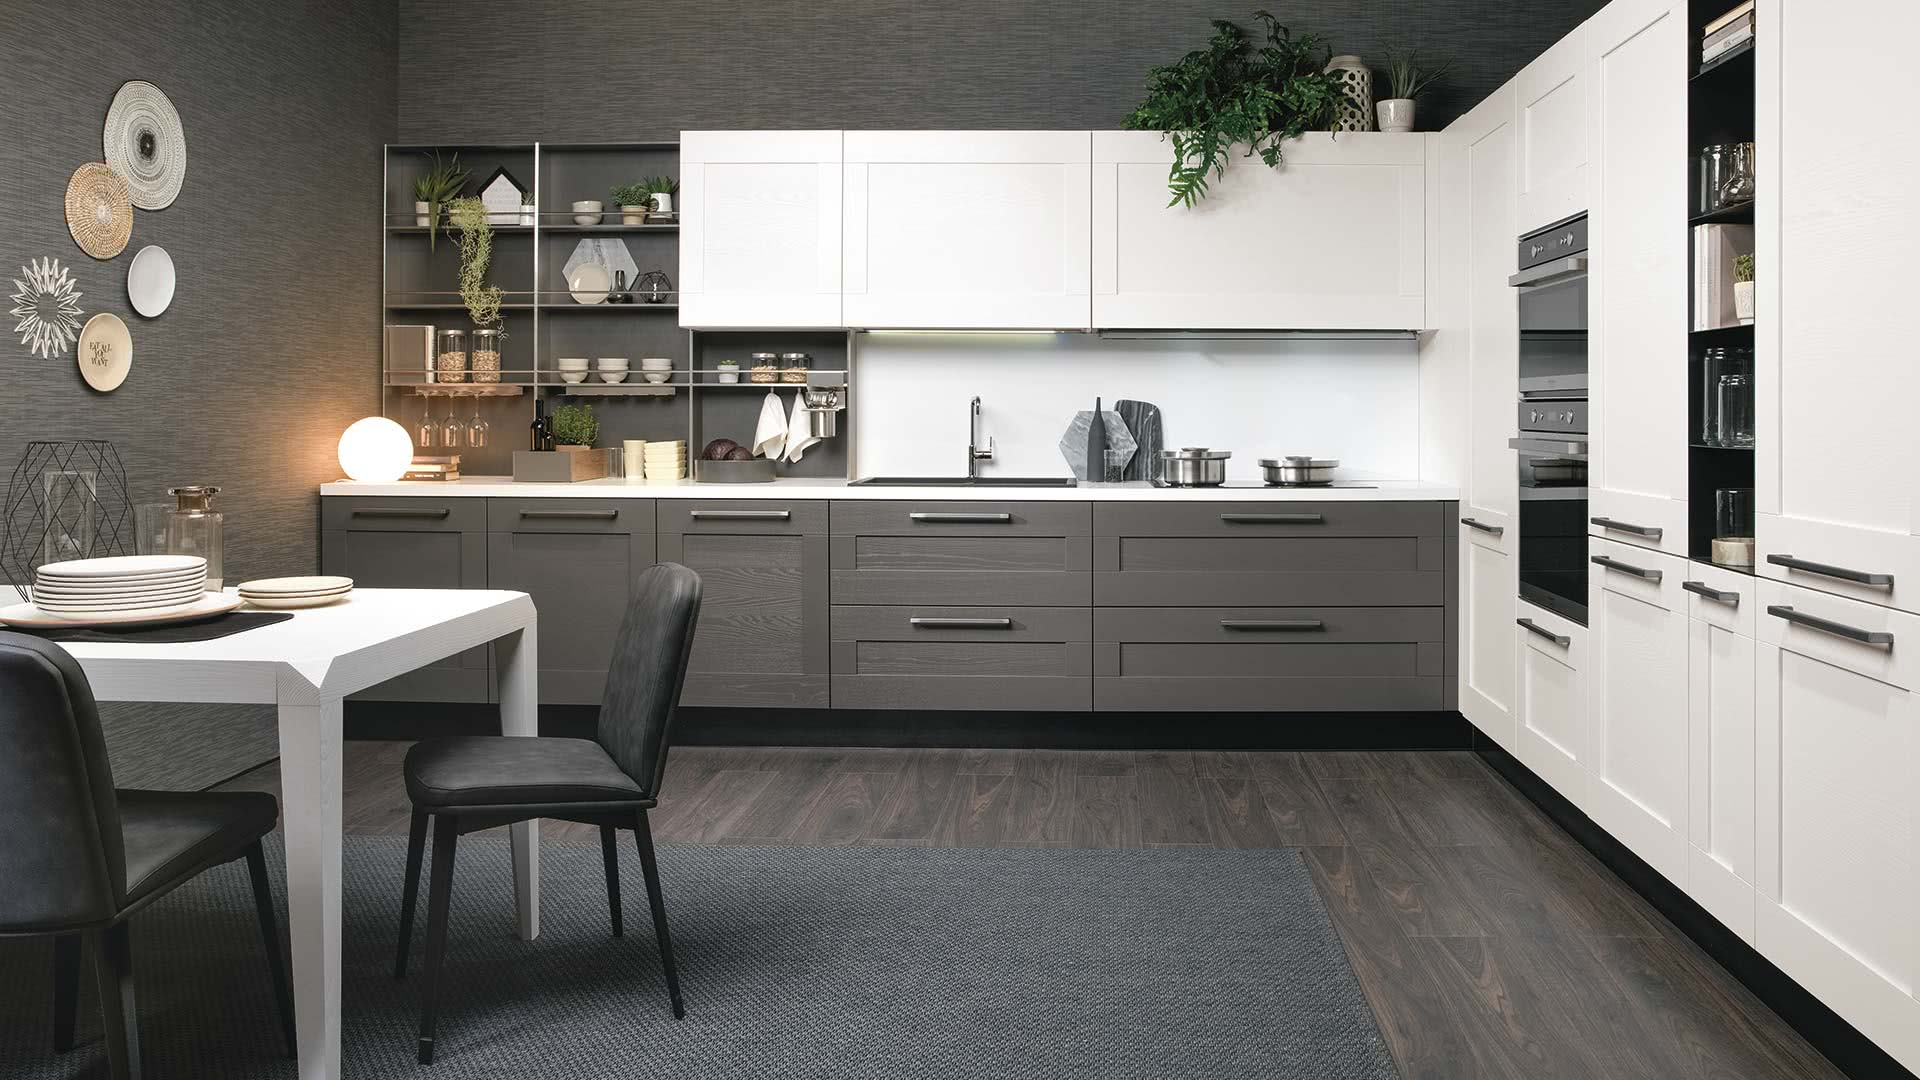 Gallery - Cucine LUBE